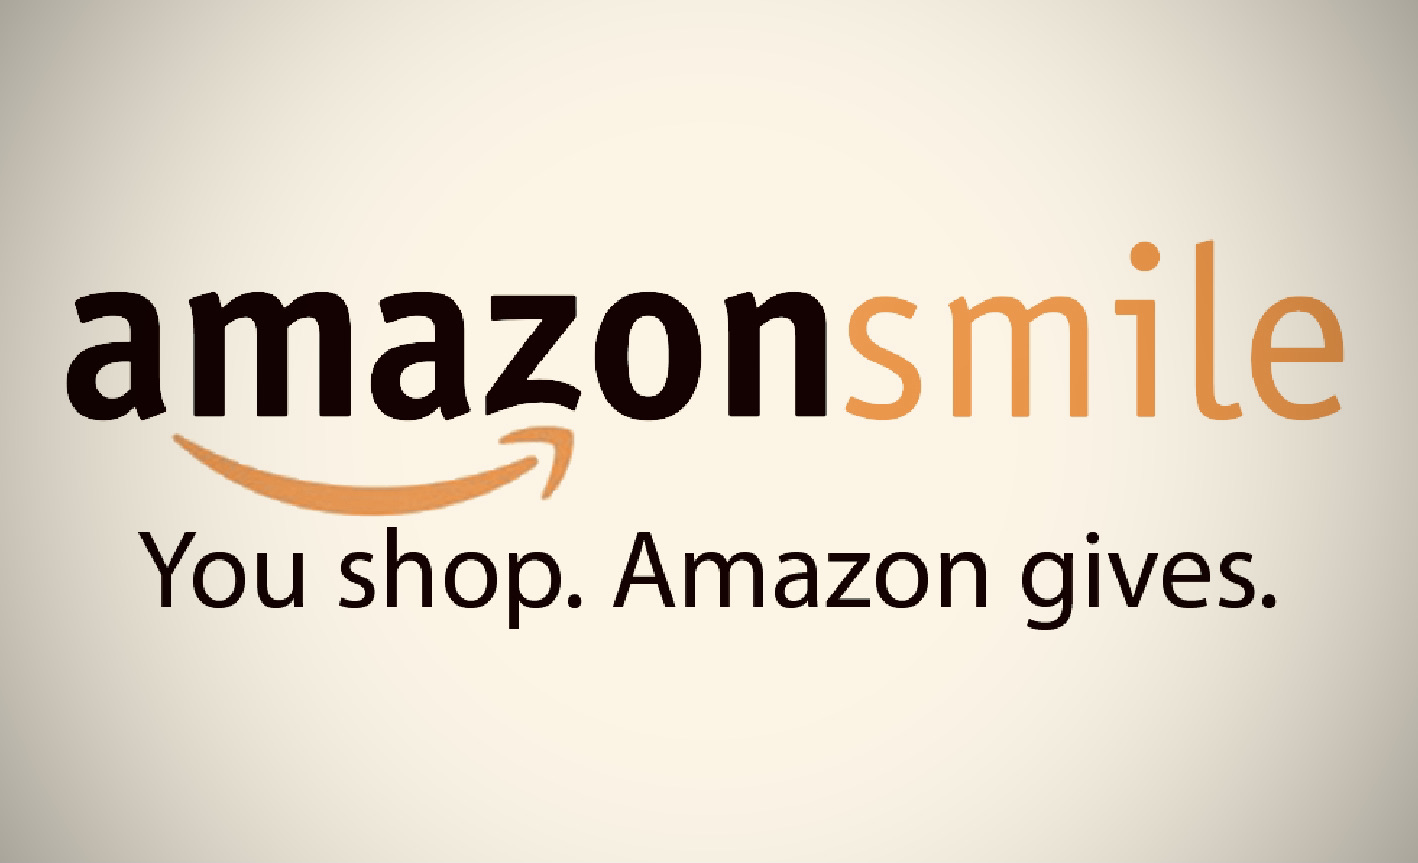 "Amazon Smile Charity Banner 1. White Background with Black and Orange Text reading ""Amazon Smile. You shop, Amazon gives."""